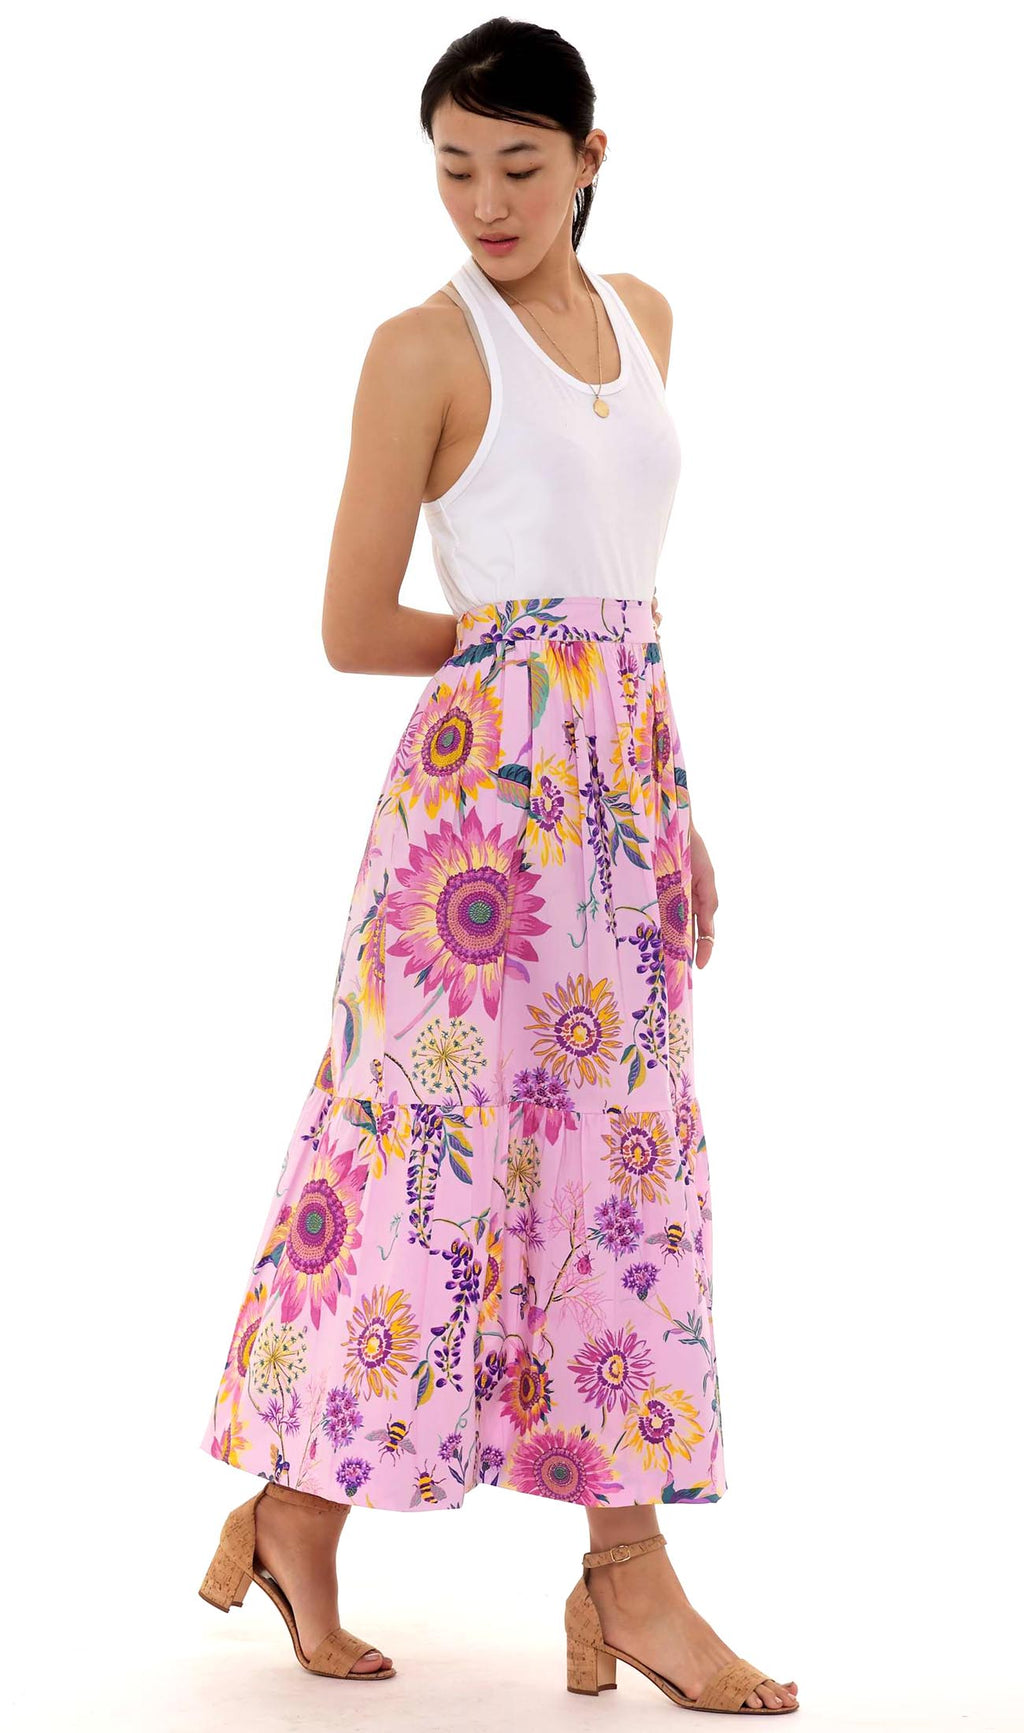 Juliette Skirt, Mid-summer Bumble Orchid Bouquet, 100% Cotton poplin